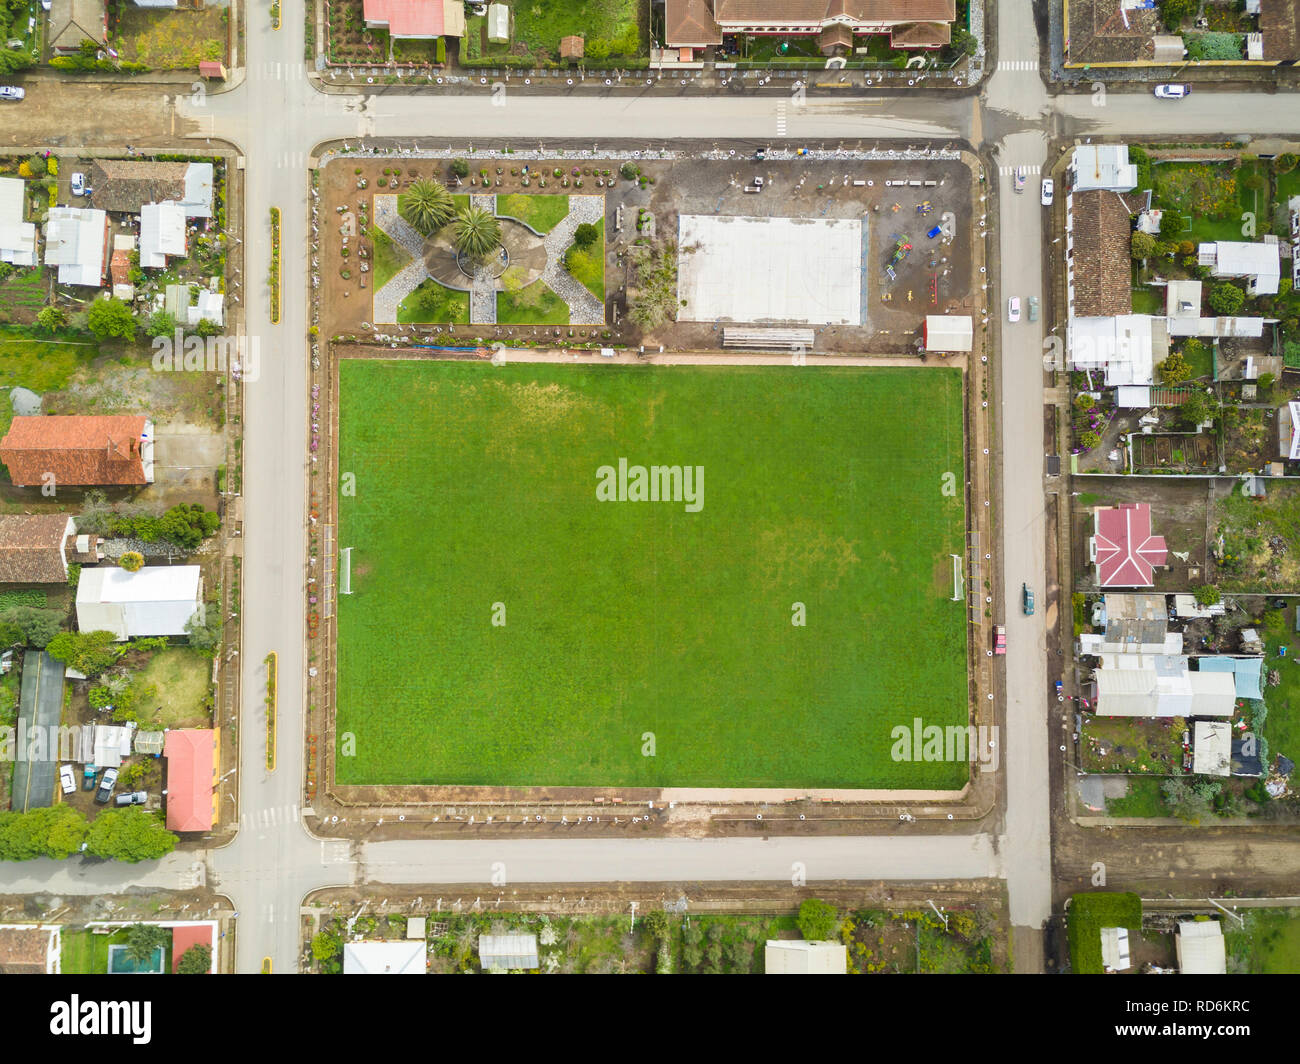 An aerial view of Chile countryside from the drone, a small grass football field as the Main Square inside a new and symmetrical urban planning - Stock Image